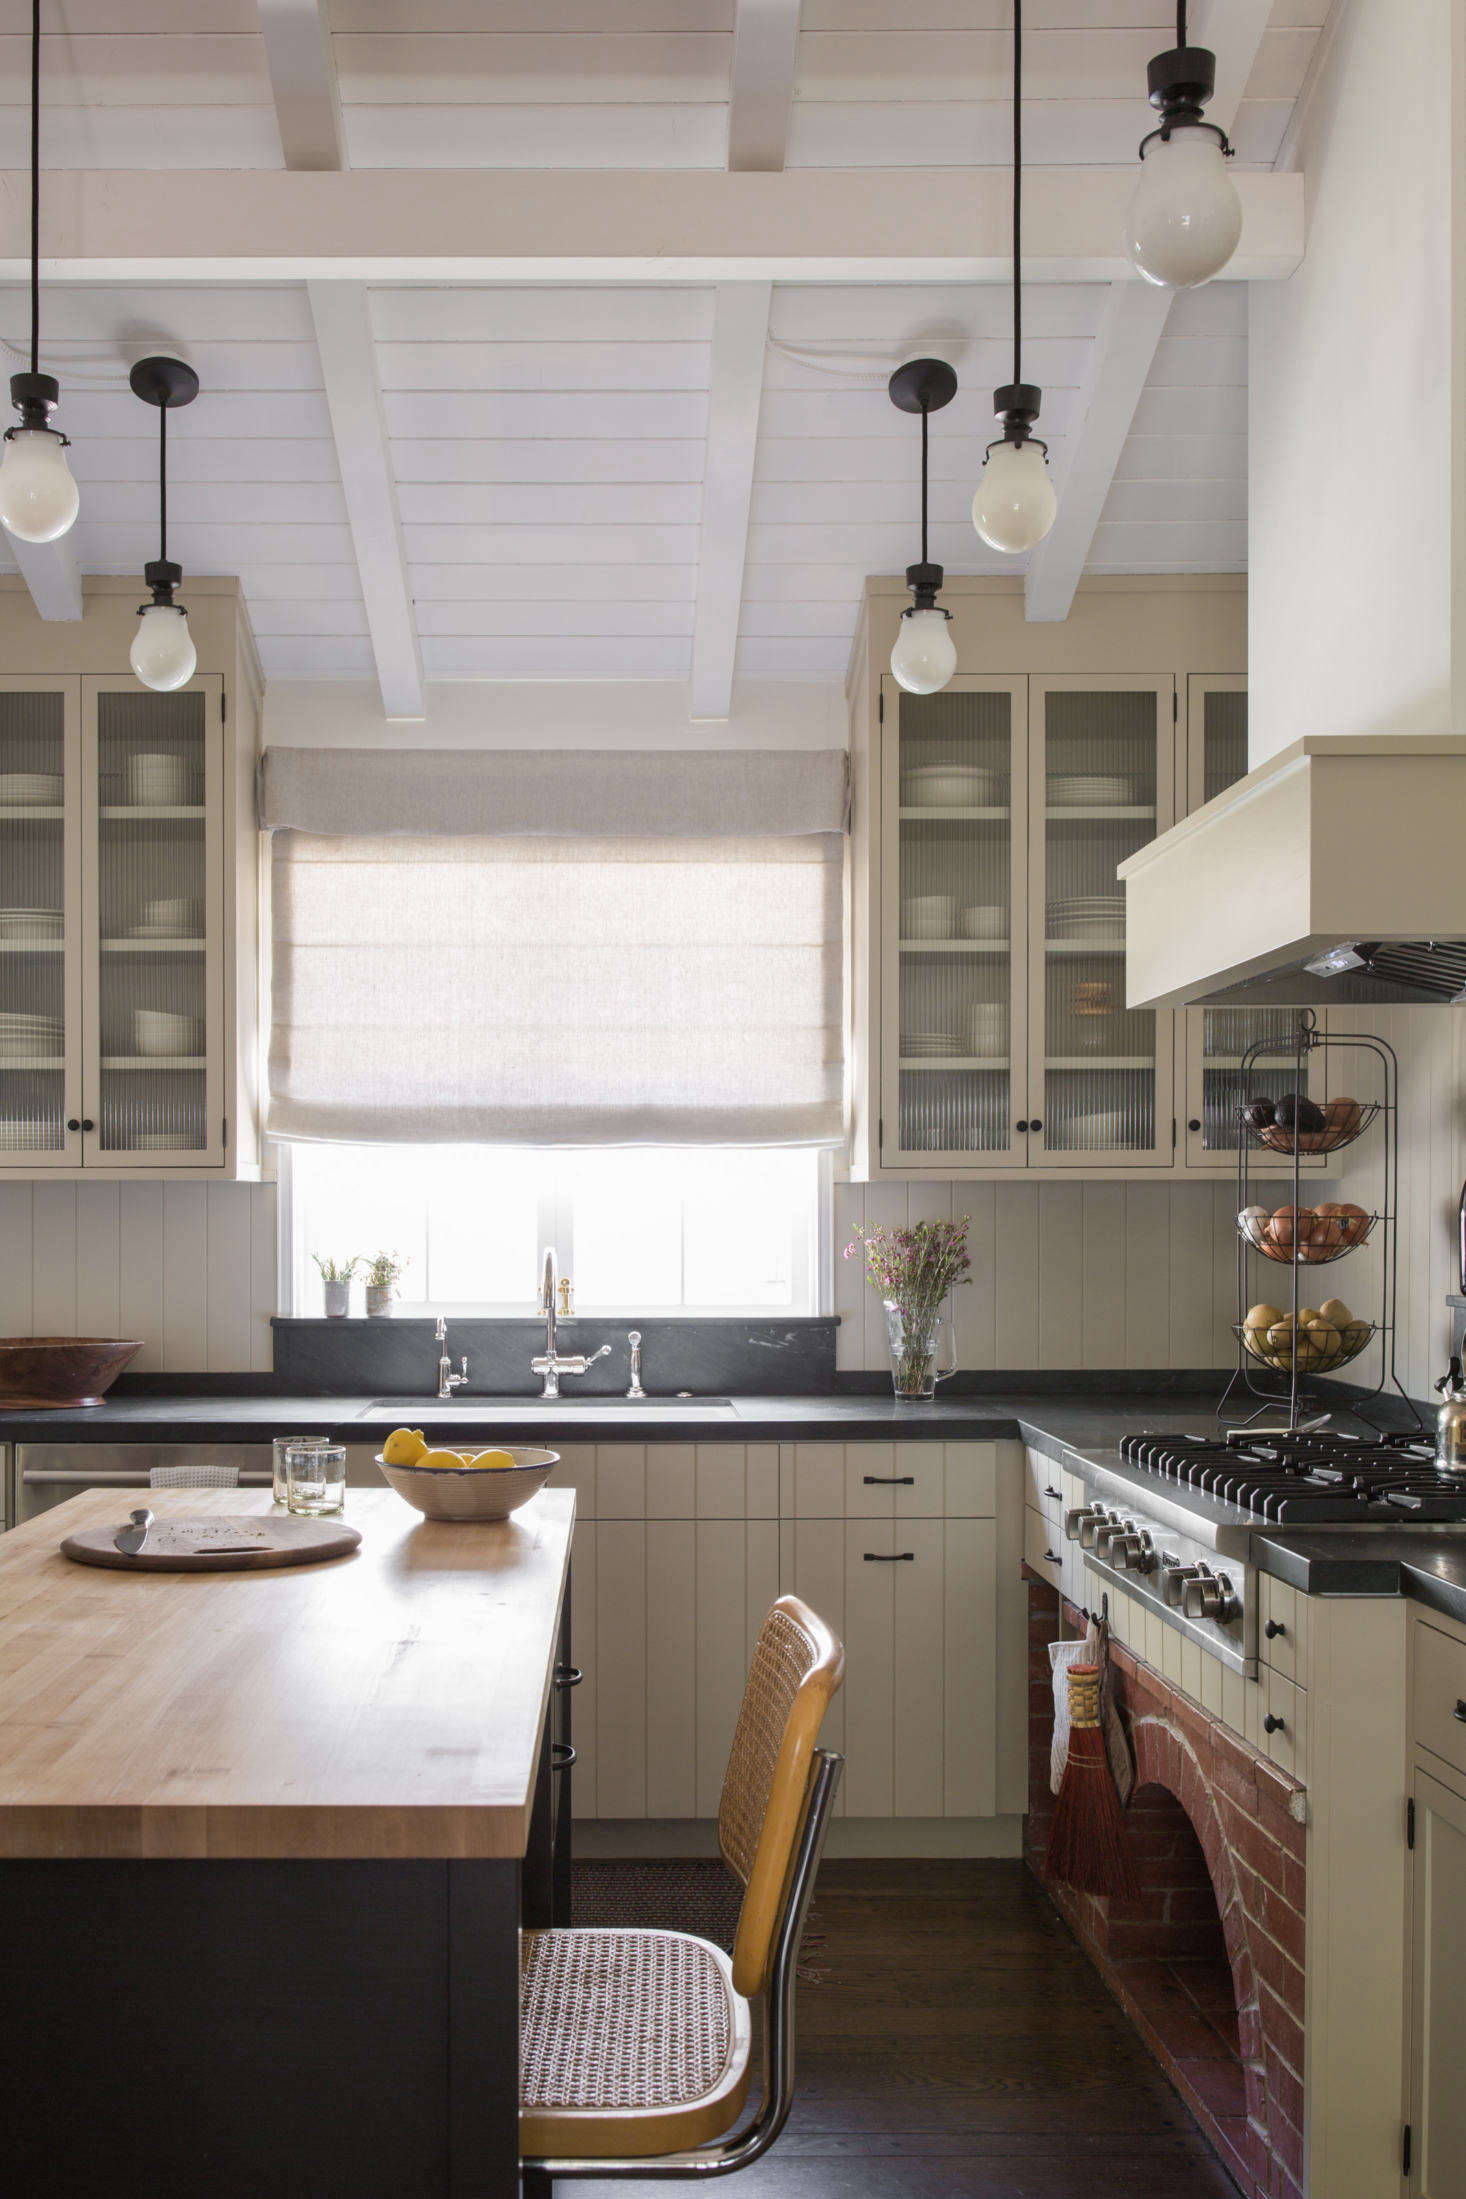 The finished kitchen is open and bright, thanks to some structural changes: &#8